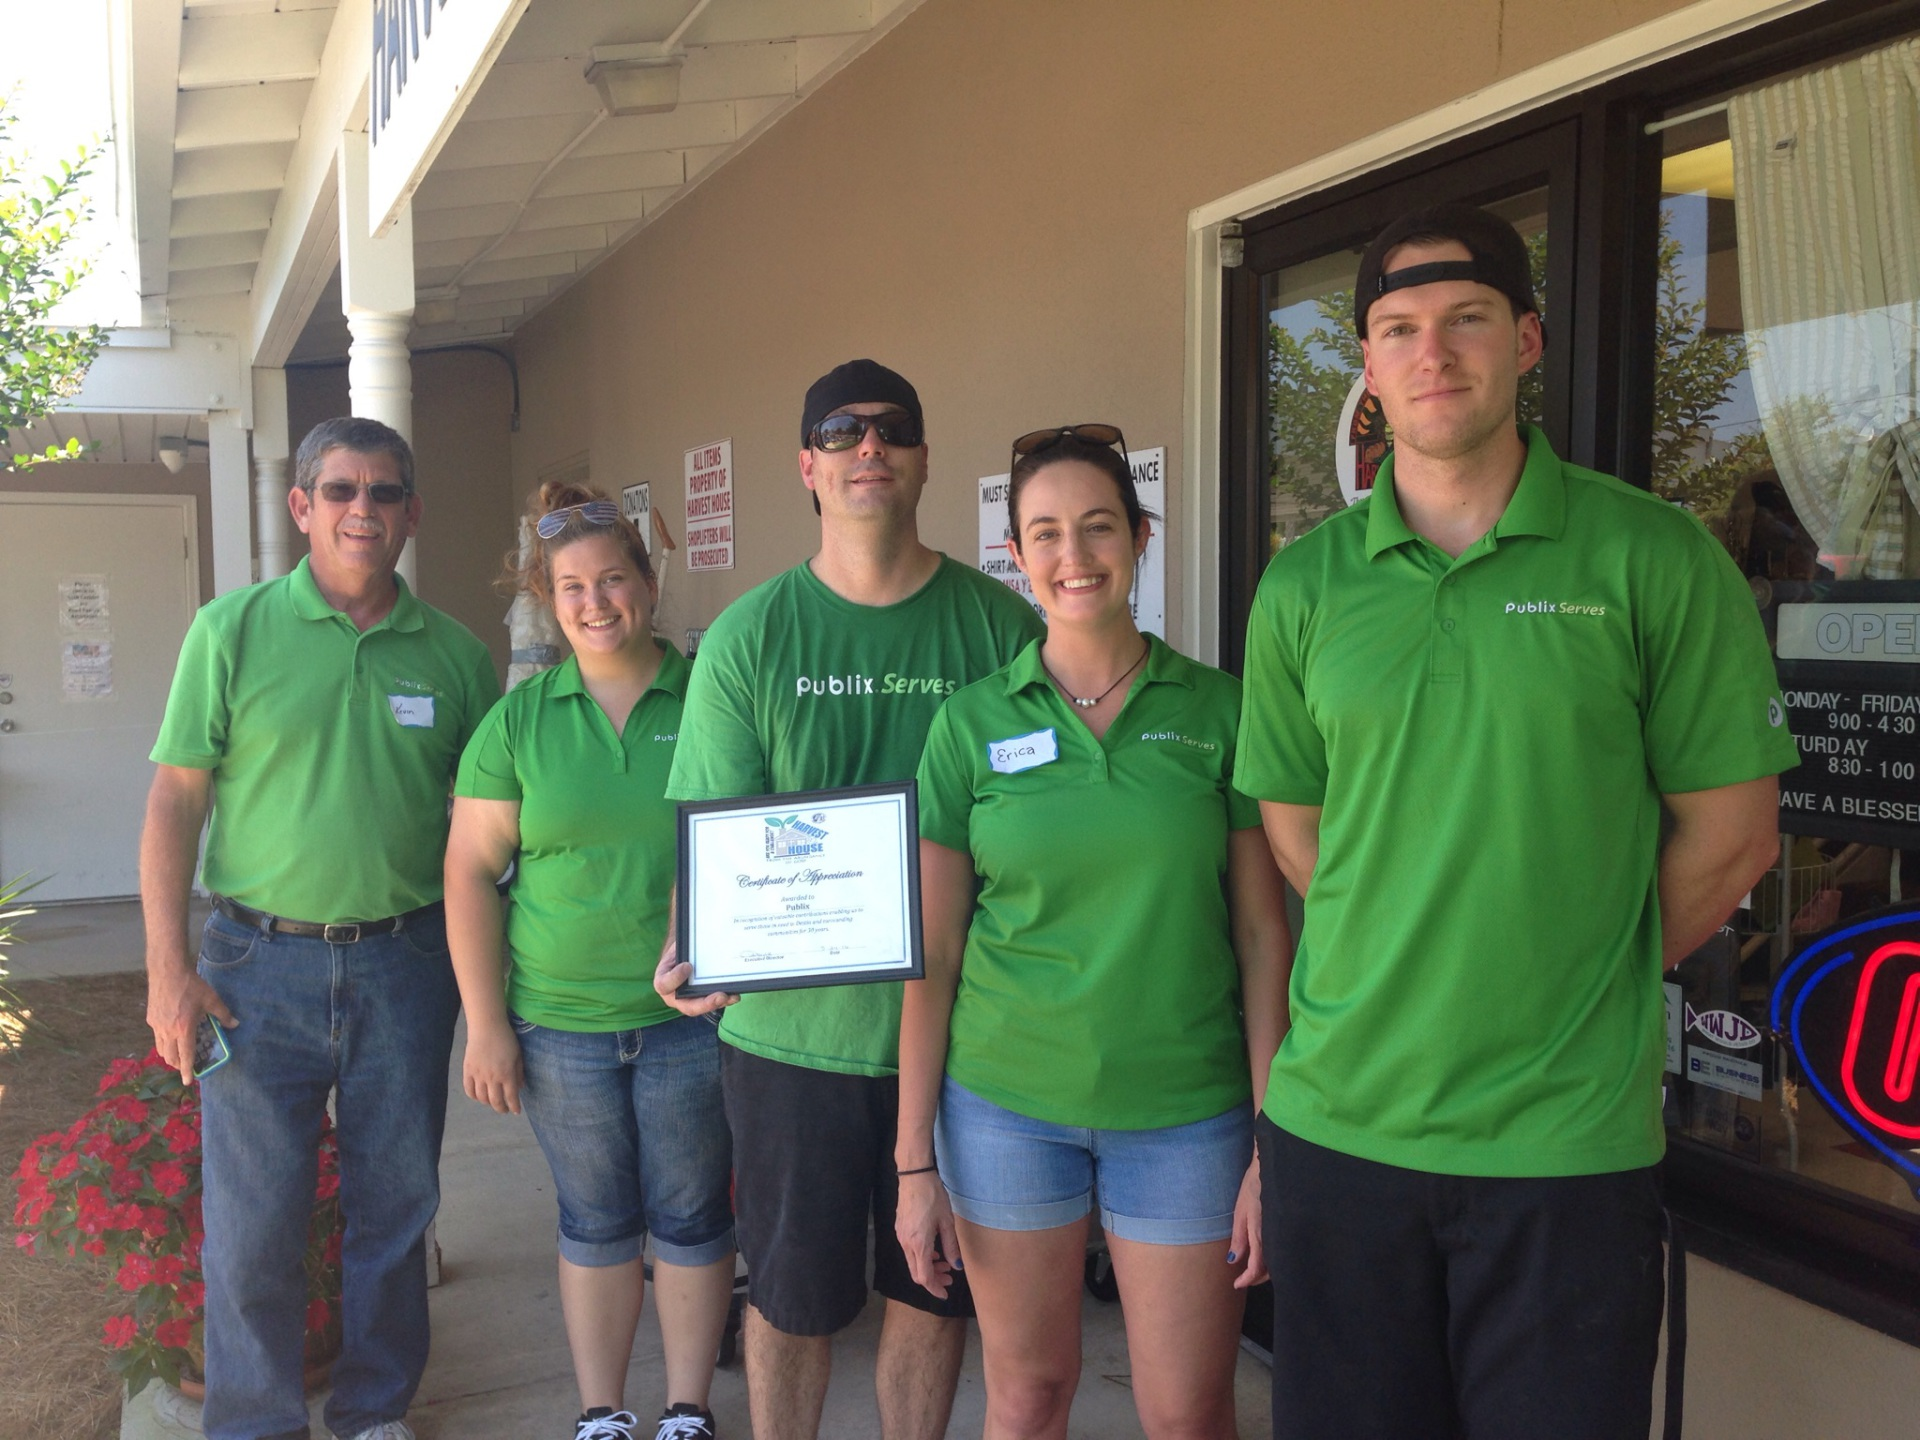 PUBLIX SERVES donating their time to help the Harvest House